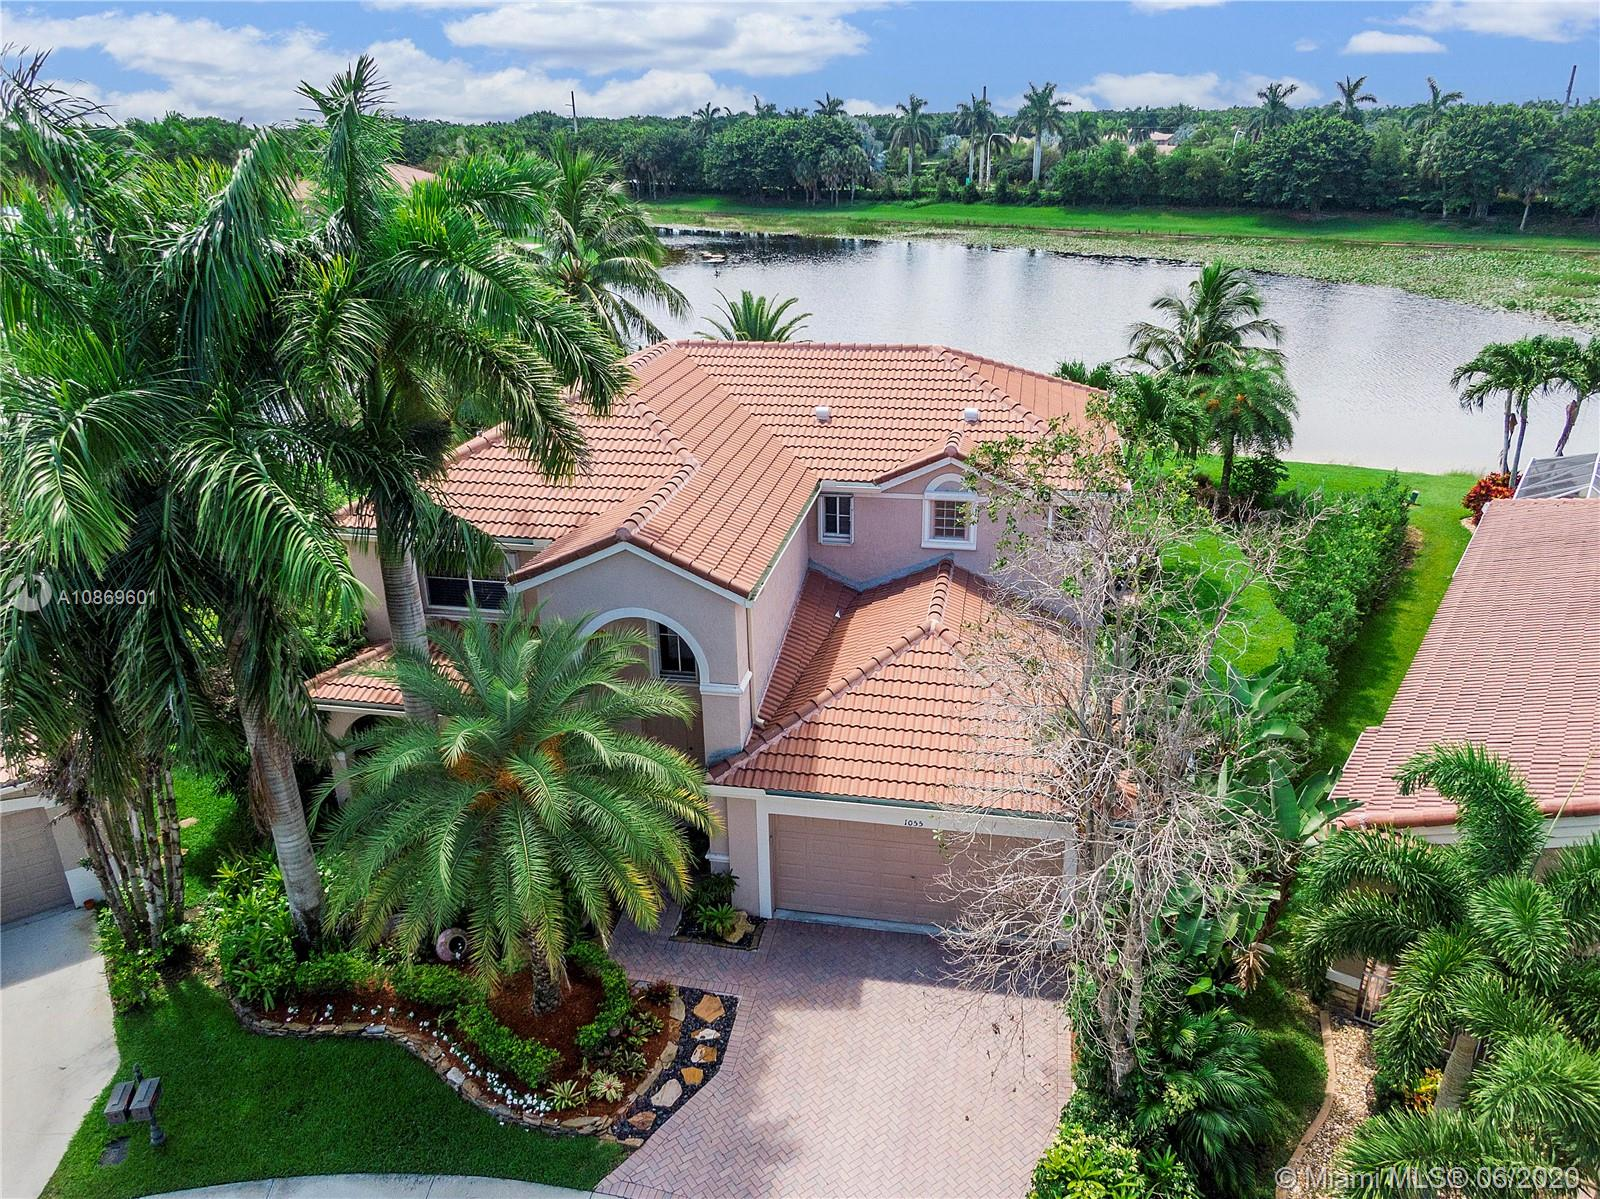 Wow! Beautiful Tropical Oasis Paradise W/Long Lake Views.  5 Bed / 4 Bath Home W/2 Car Garage On A Pie Shaped Waterfront Lot Located On A Cul De Sac In The Heart Of Weston. NEW Roof 2020. Home Features Open Layout. Granite Custom Kitchen With Stainless Steel Appliances, Wood Cabinets, Breakfast Bar, Built-In Nook, And Pantry. Master Suite Has His & Her Custom Closets & Natural Lighting. Stunning Master Bath Has Barn Door Entry, His & Her Wood Vanities W/Marble Counters, Upgraded Lighting, Frameless Double Shower, & Designer Tub. 1 Bed and Bath Downstairs. Custom Staircase W/Rod Iron Railings, Crown Molding,. (2) Newer AC Units W/ Nest Thermostats. Tile And Hard Wood Flooring. Impact Oversized Tropical Yard Features Covered Patio, Lake, Lush Landscaping For Privacy And More. Must See!